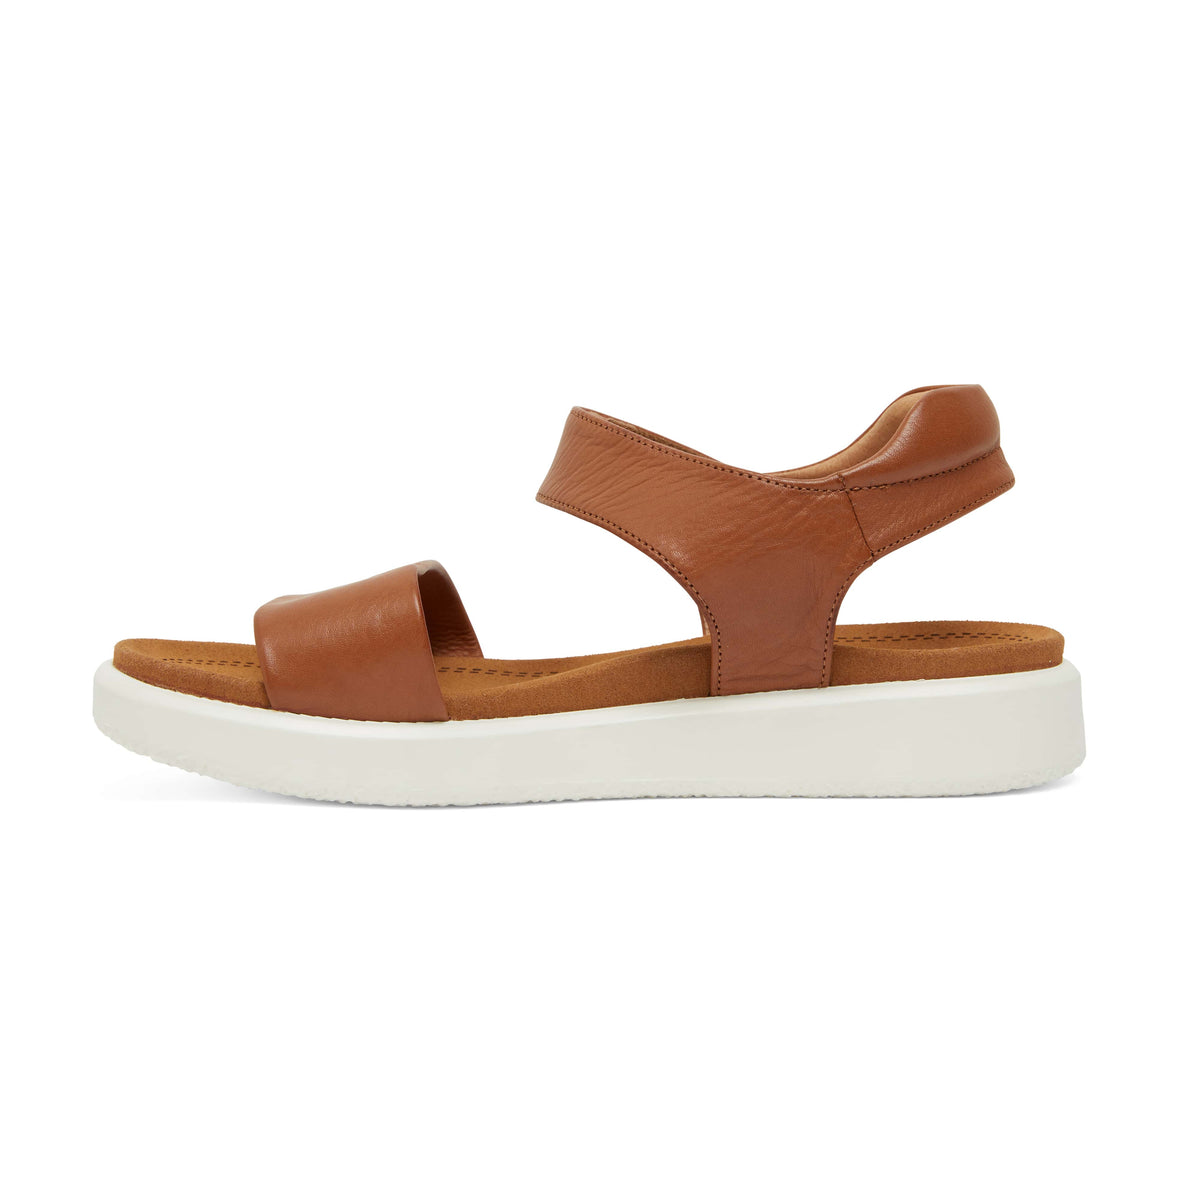 Falcon Sandal in Tan Leather